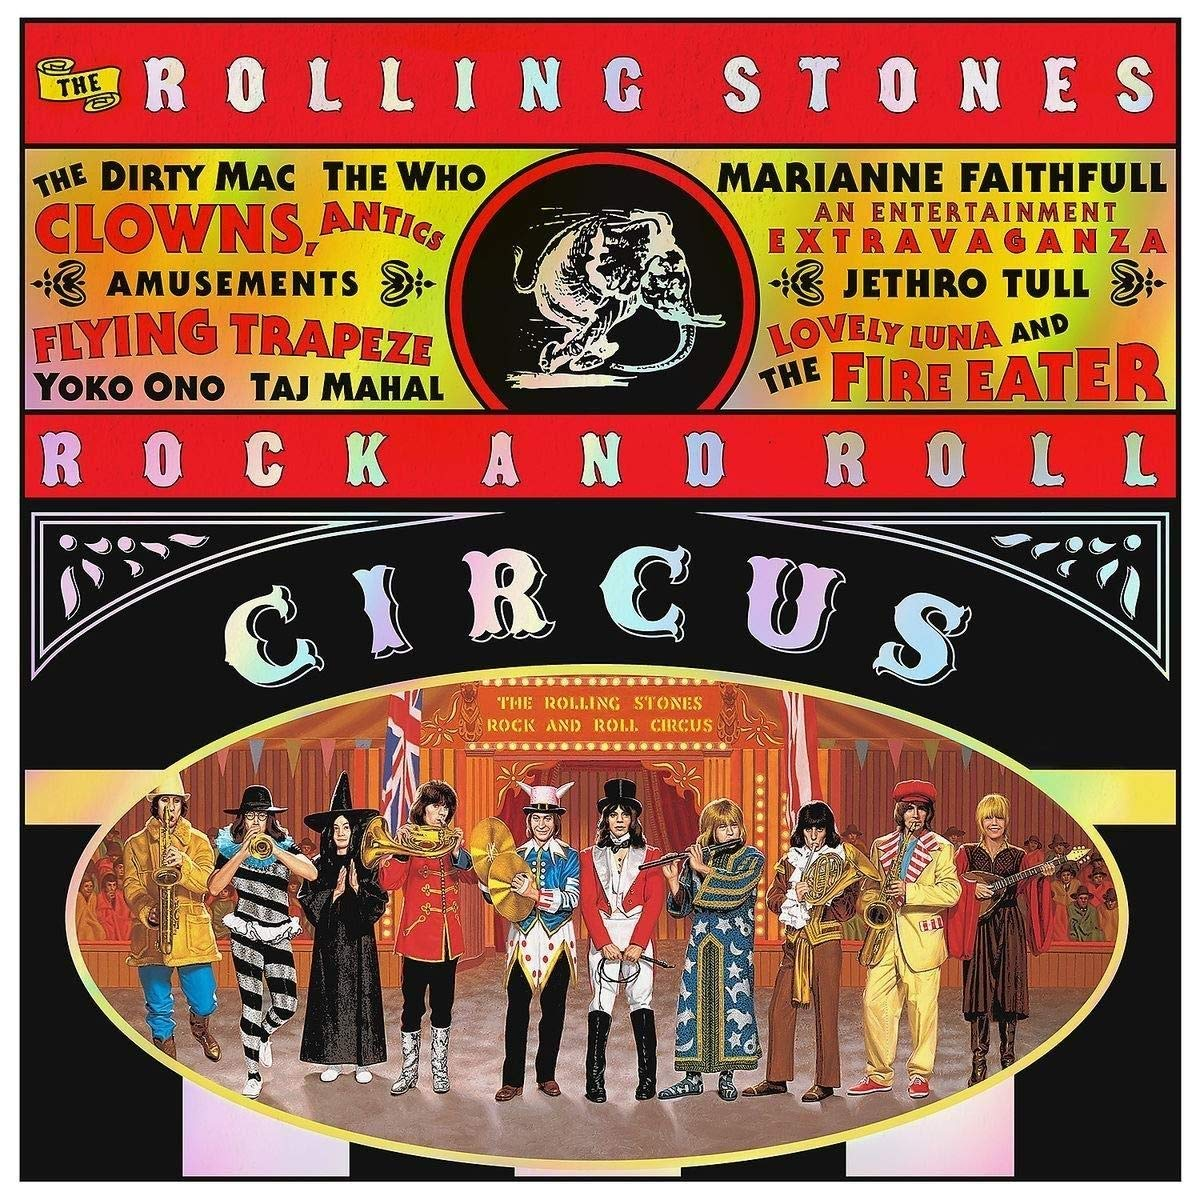 The Rolling Stones The Rolling Stones. Rock And Roll Circus. Deluxe (2 CD) barefoot over stones